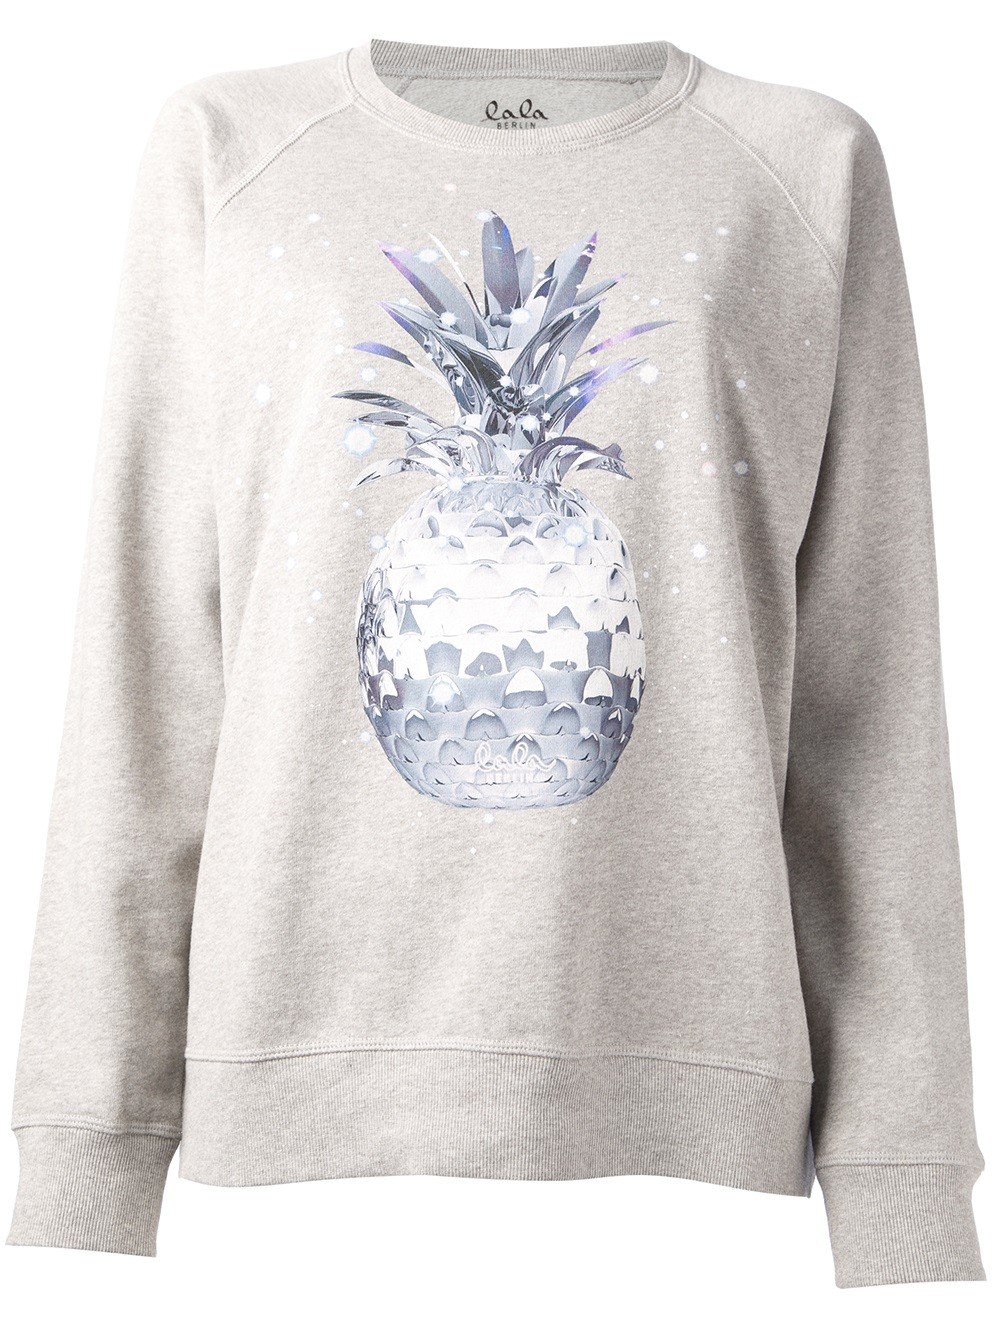 lyst lala berlin space pineapple sweatshirt in gray. Black Bedroom Furniture Sets. Home Design Ideas